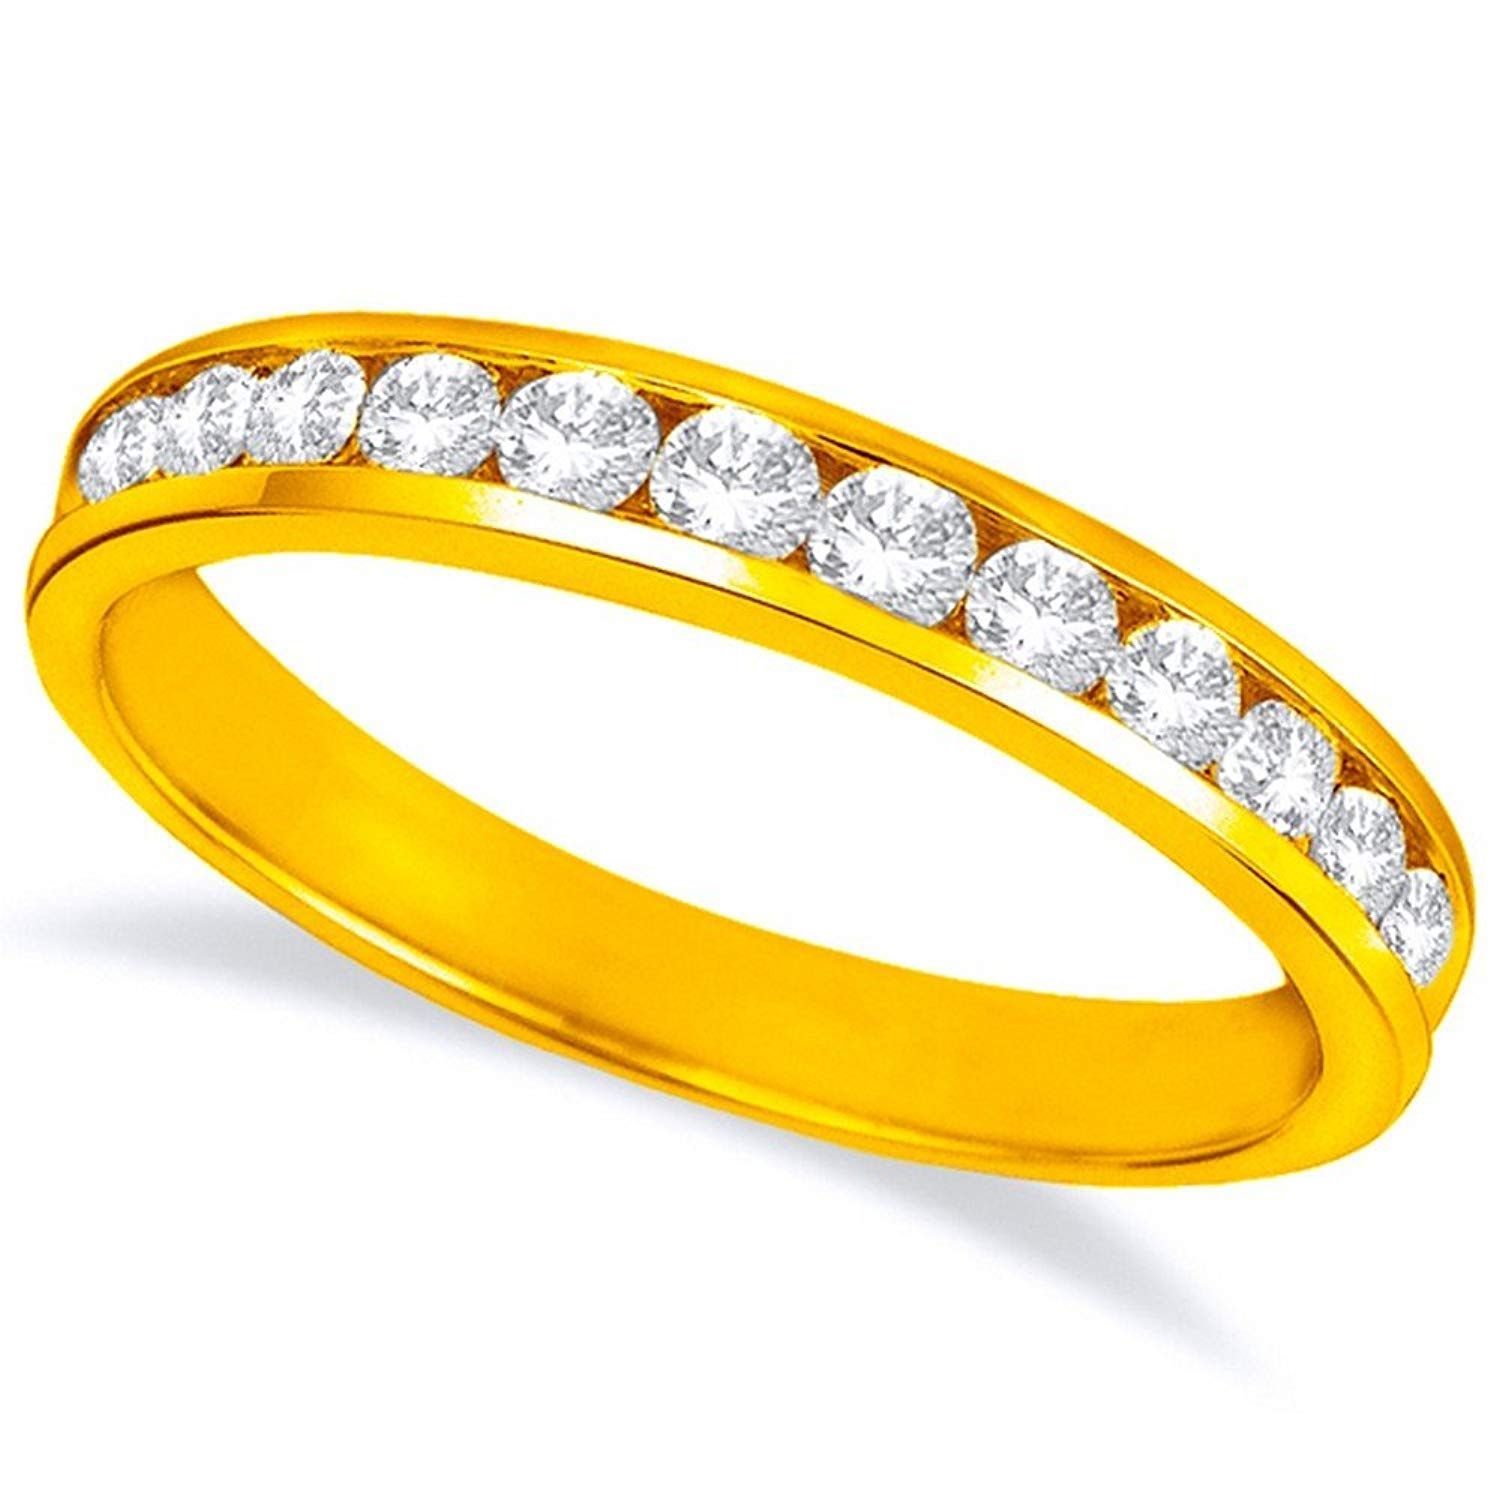 Buy Jewels 14k Gold Dainty Half Band Natural Diamond Wedding Anniversary Ring 0.08 cttw, G-H Color